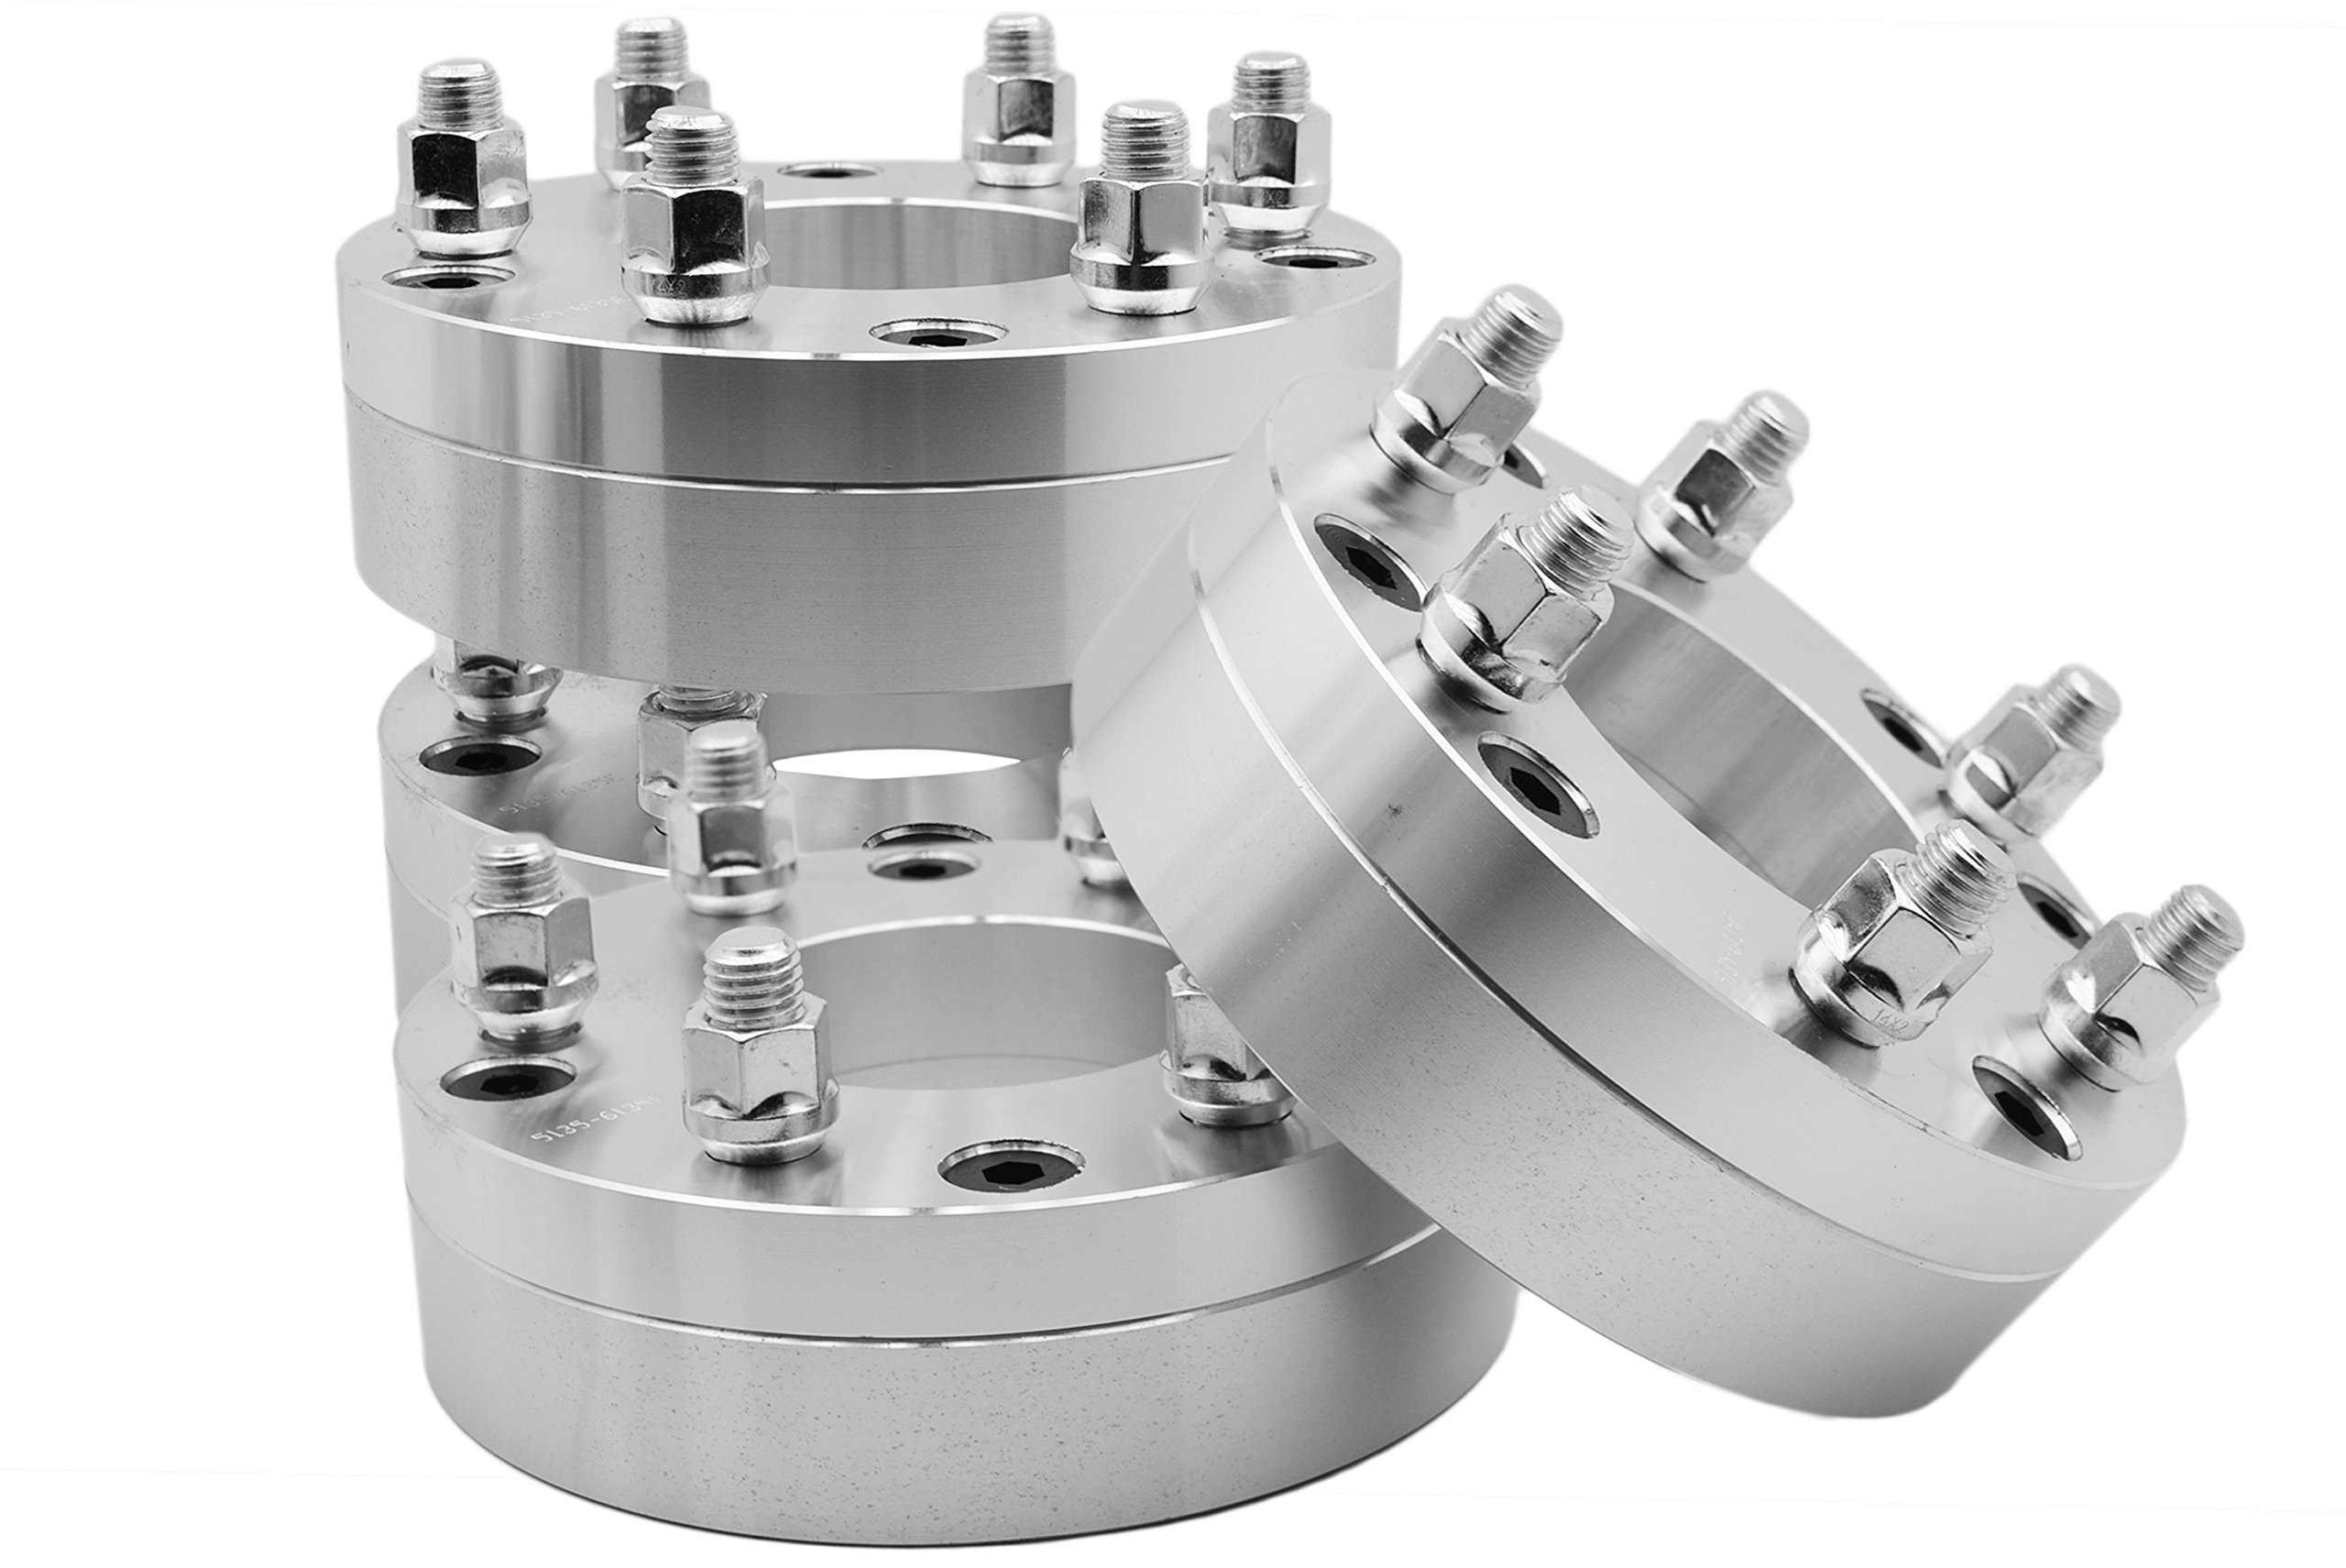 4 Pc 5x5 to 6x5.5'' 5 Lug To 6 Lug Wheel Spacers Adapters Conversion Bolt On 2'' Thick Trucks Heavy Duty 2 Piece Construction